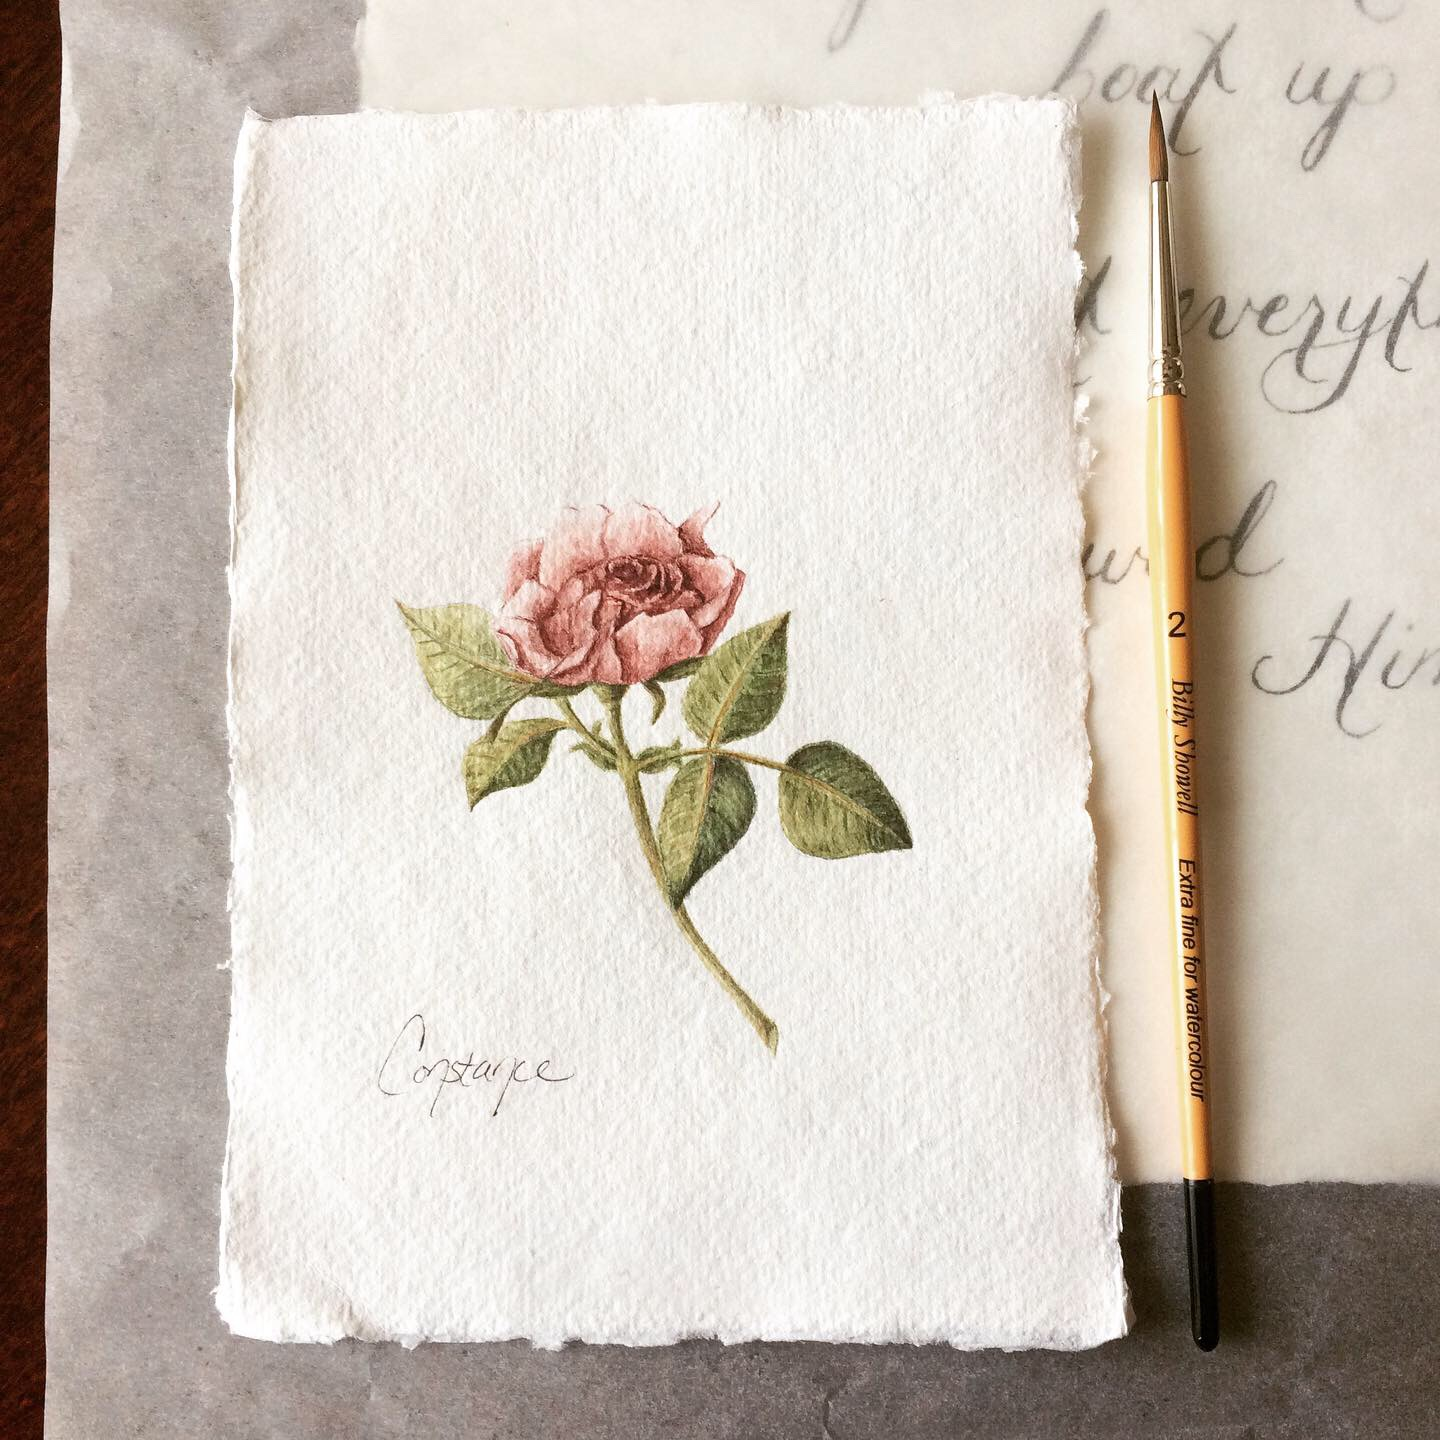 Lovely Fairy Miniature Rose Composition, Watercolor on Handmade Paper, 5x7, ConstanceReeder.Com